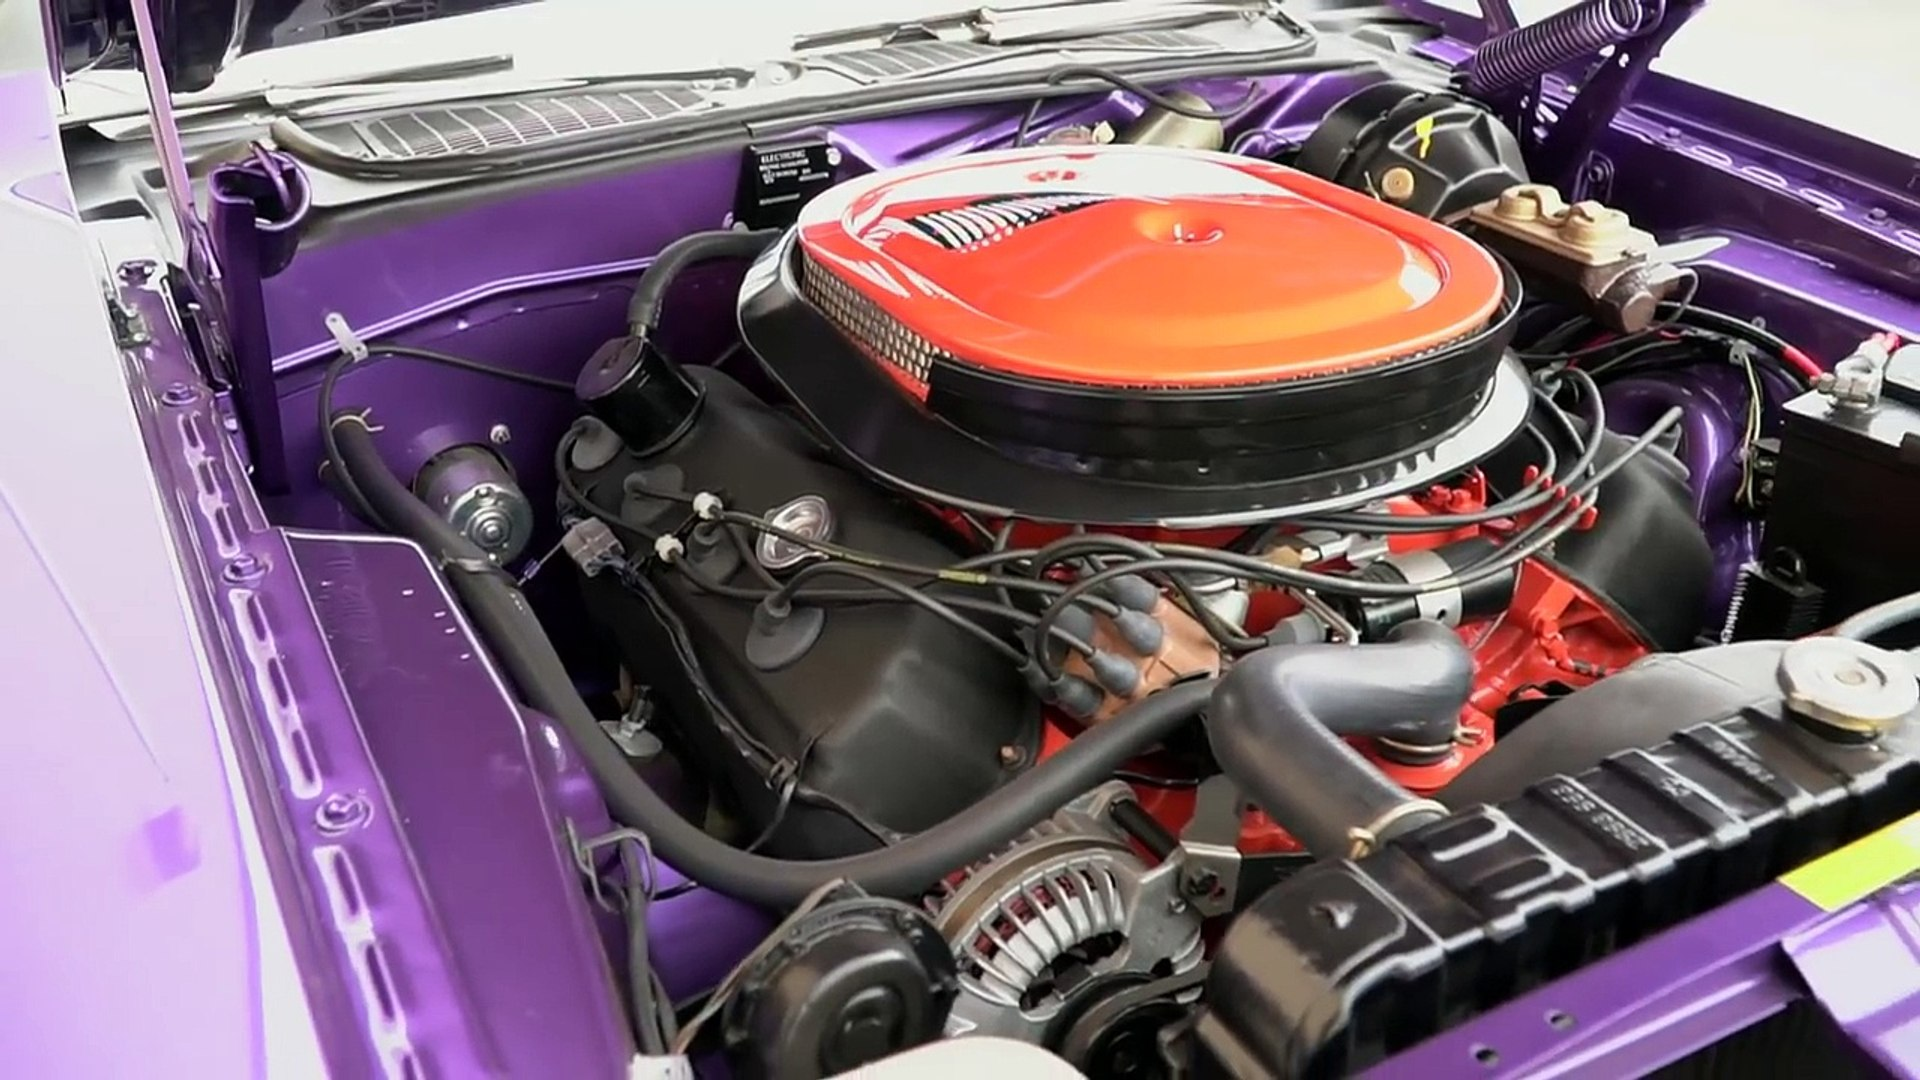 1970 Dodge Challenger 426 Hemi Convertible- Muscle Car Of The Week Video Episode #207